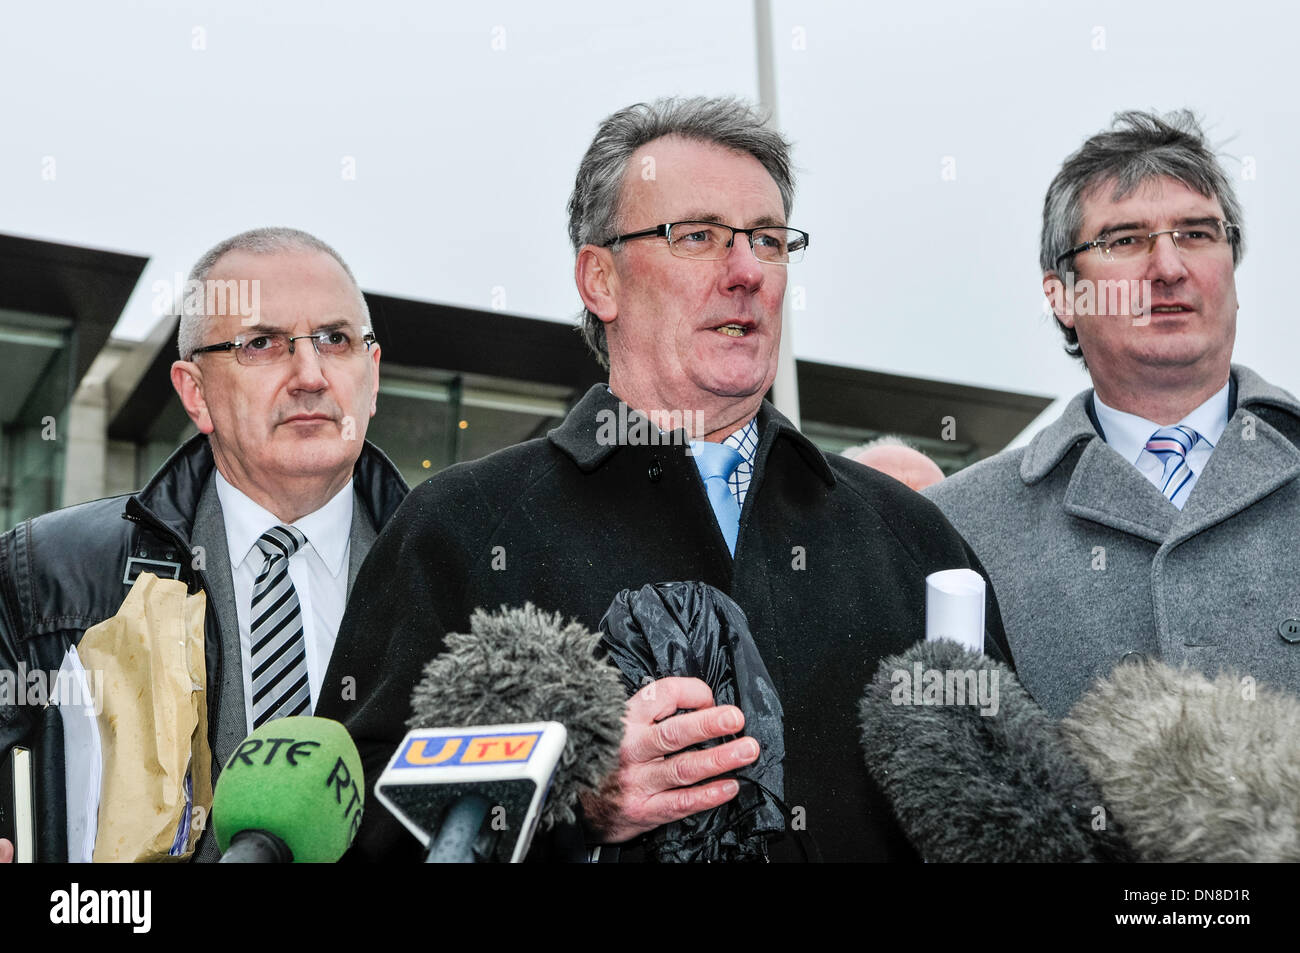 Belfast, Northern Ireland. 20 Dec 2013 - The UUP delegation led by Mike Nesbitt  emerges from the Haass talks over the Northern Ireland issues for the future. Credit:  Stephen Barnes/Alamy Live News - Stock Image